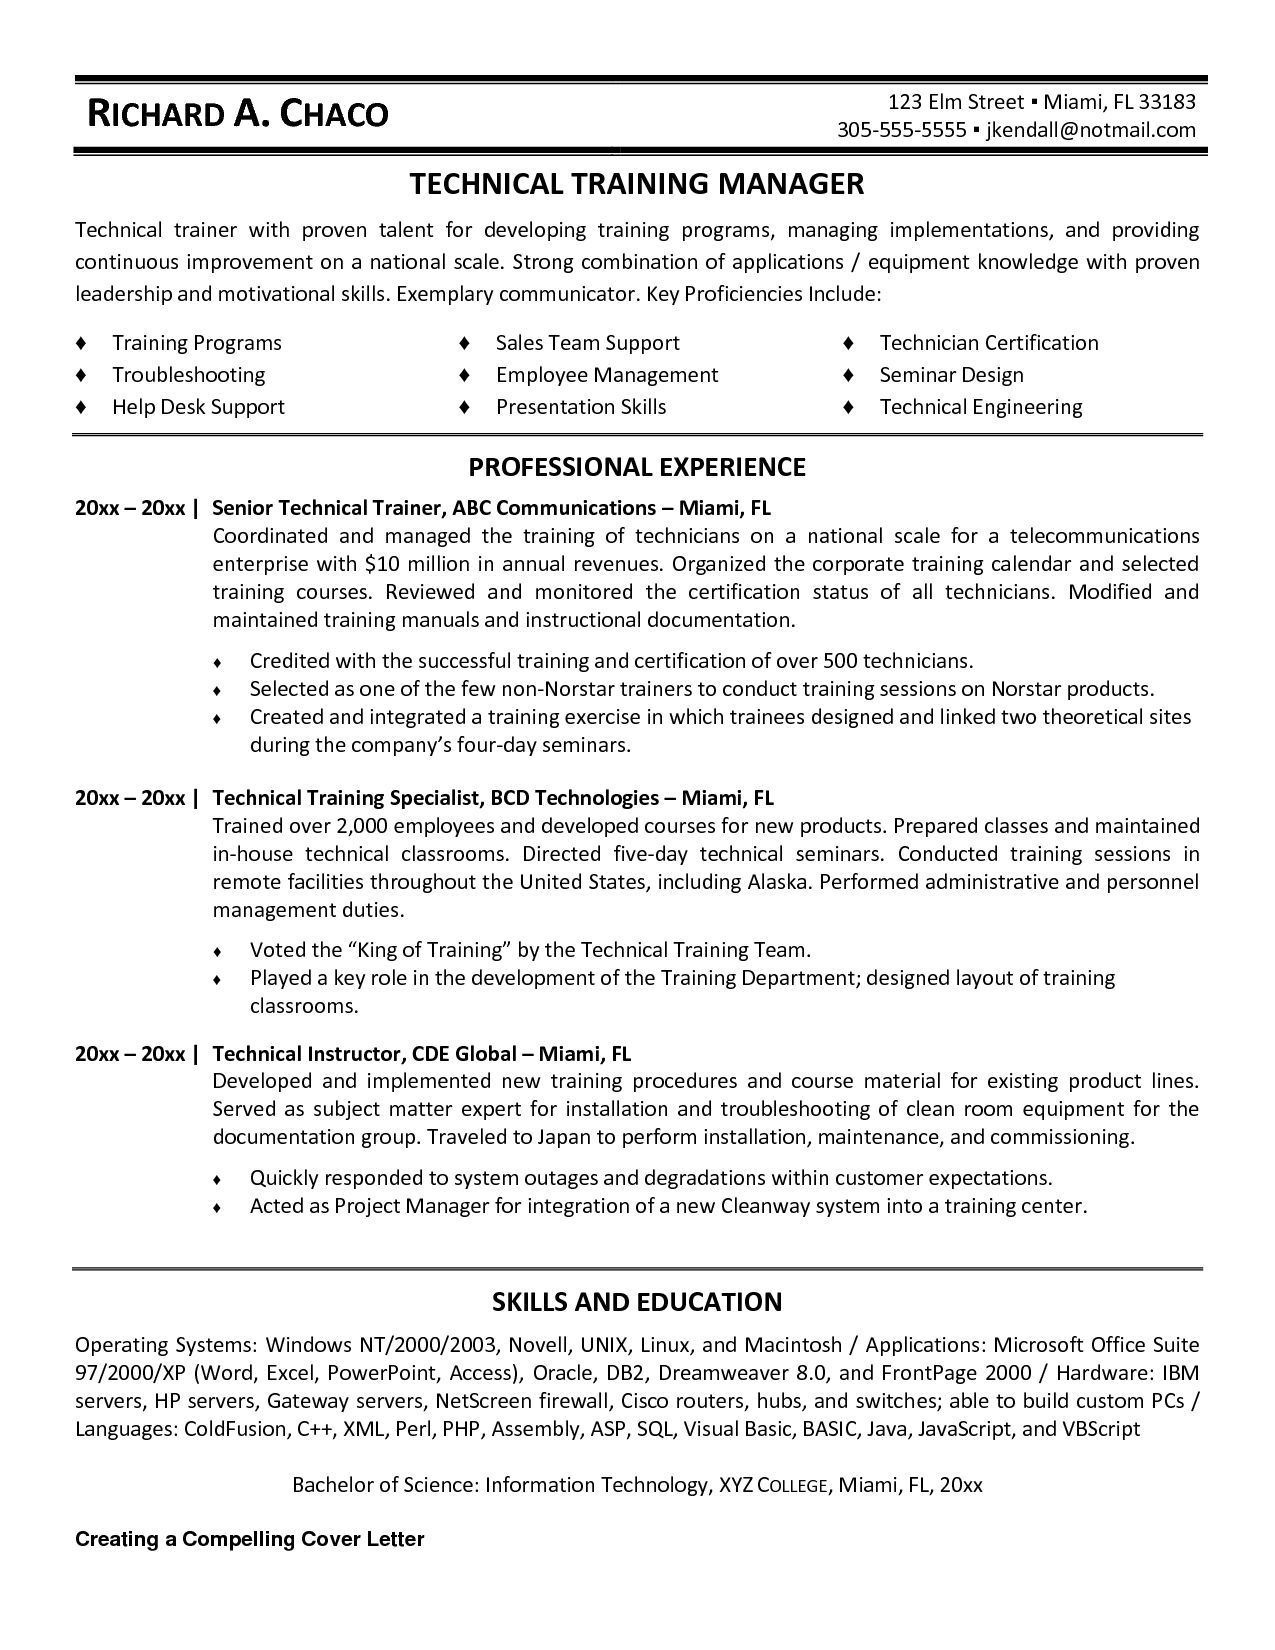 Sample Trainer Resume Personal Trainer Resume Objective Personal Trainer Resume